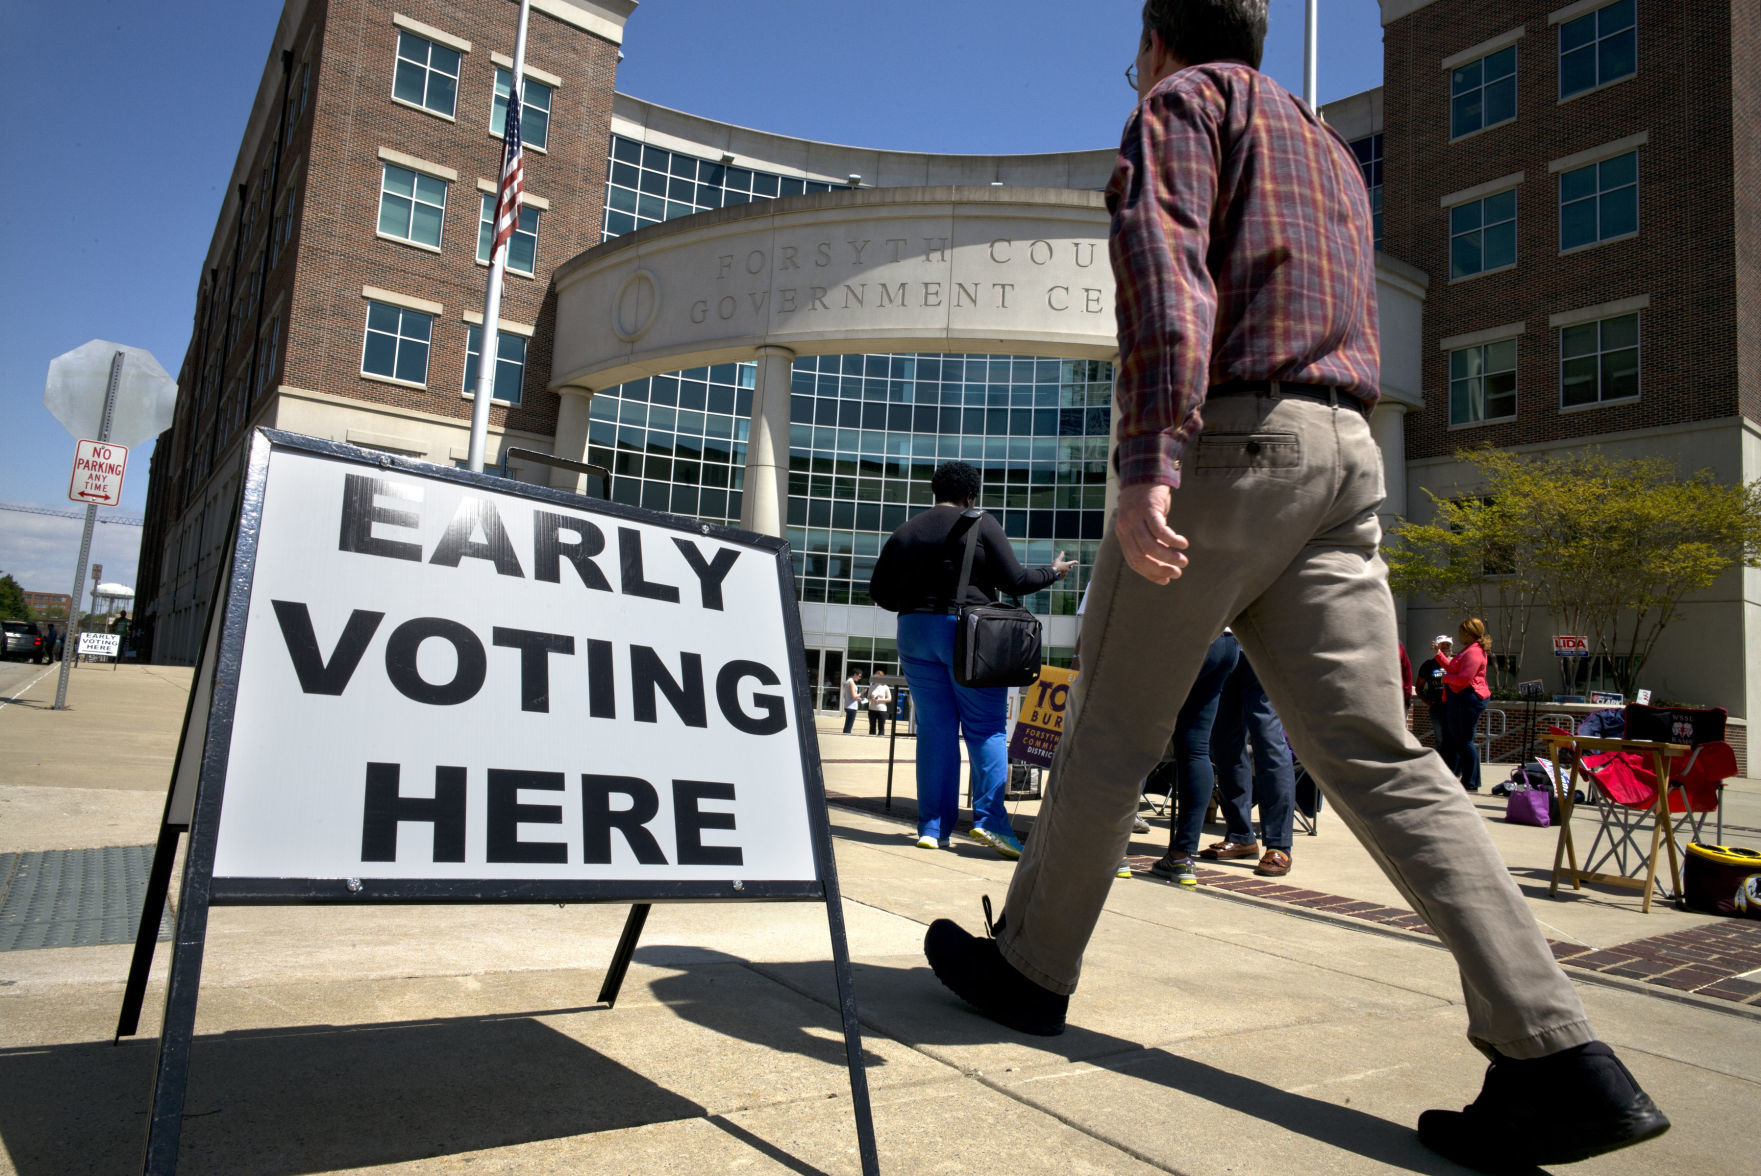 More than 250 vote on first day of early voting in Forsyth County | Winston Salem Journal